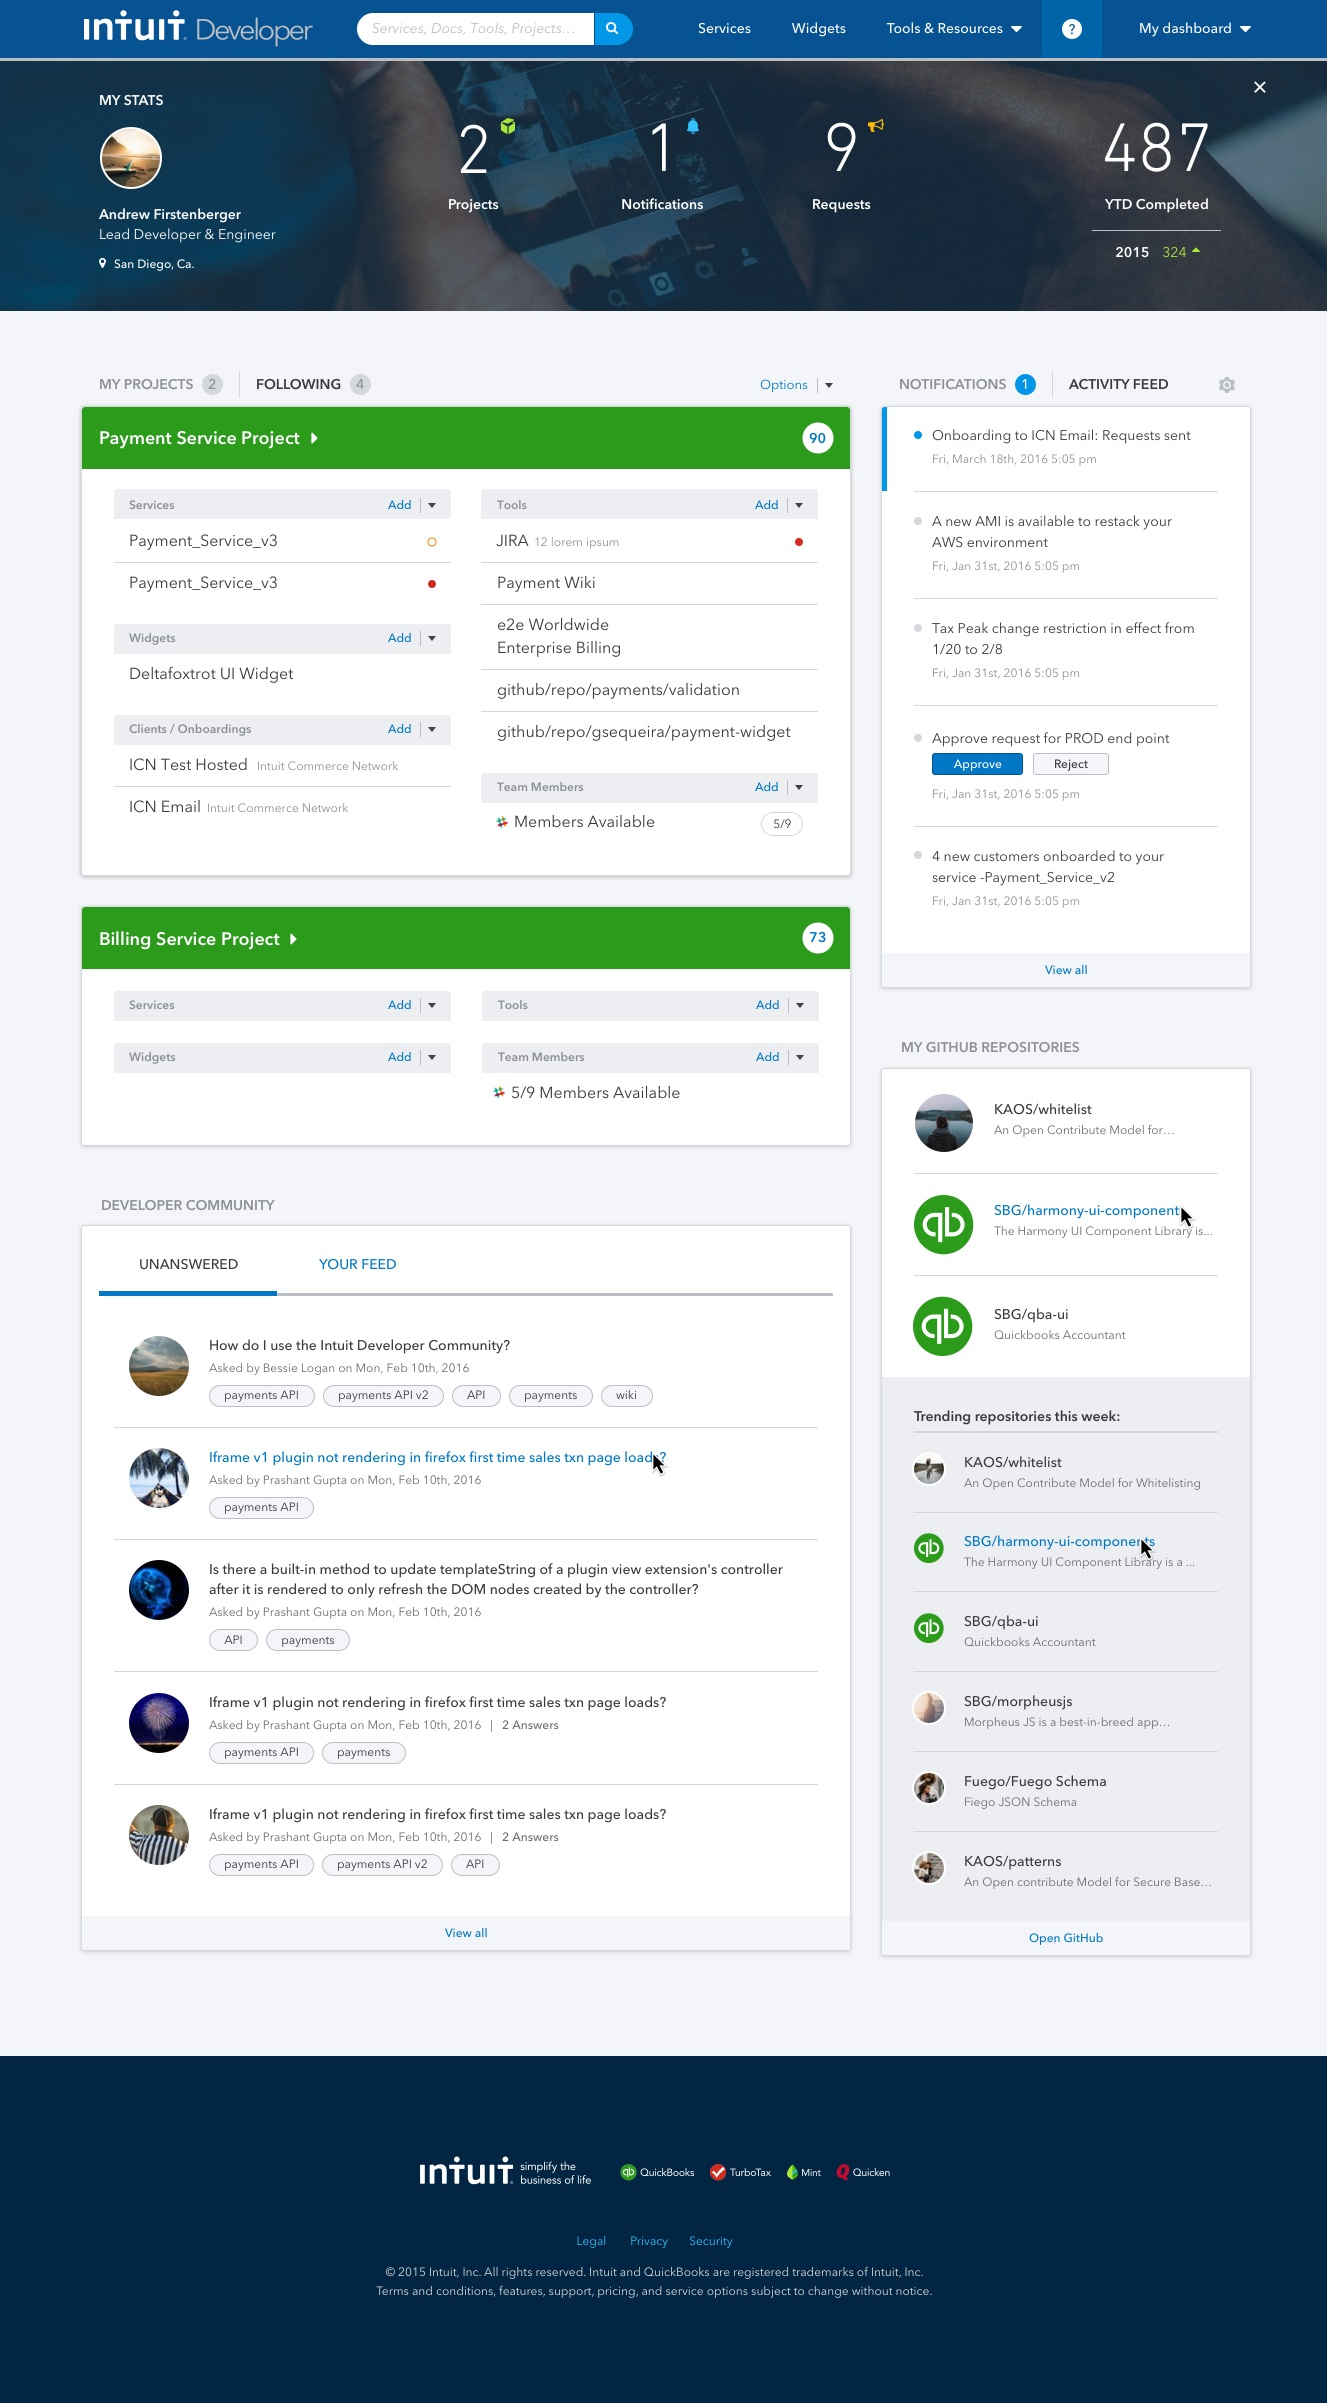 screencapture-turbotax-invisionapp-share-BS5WVPEA4-2019-06-20-13_19_04.png